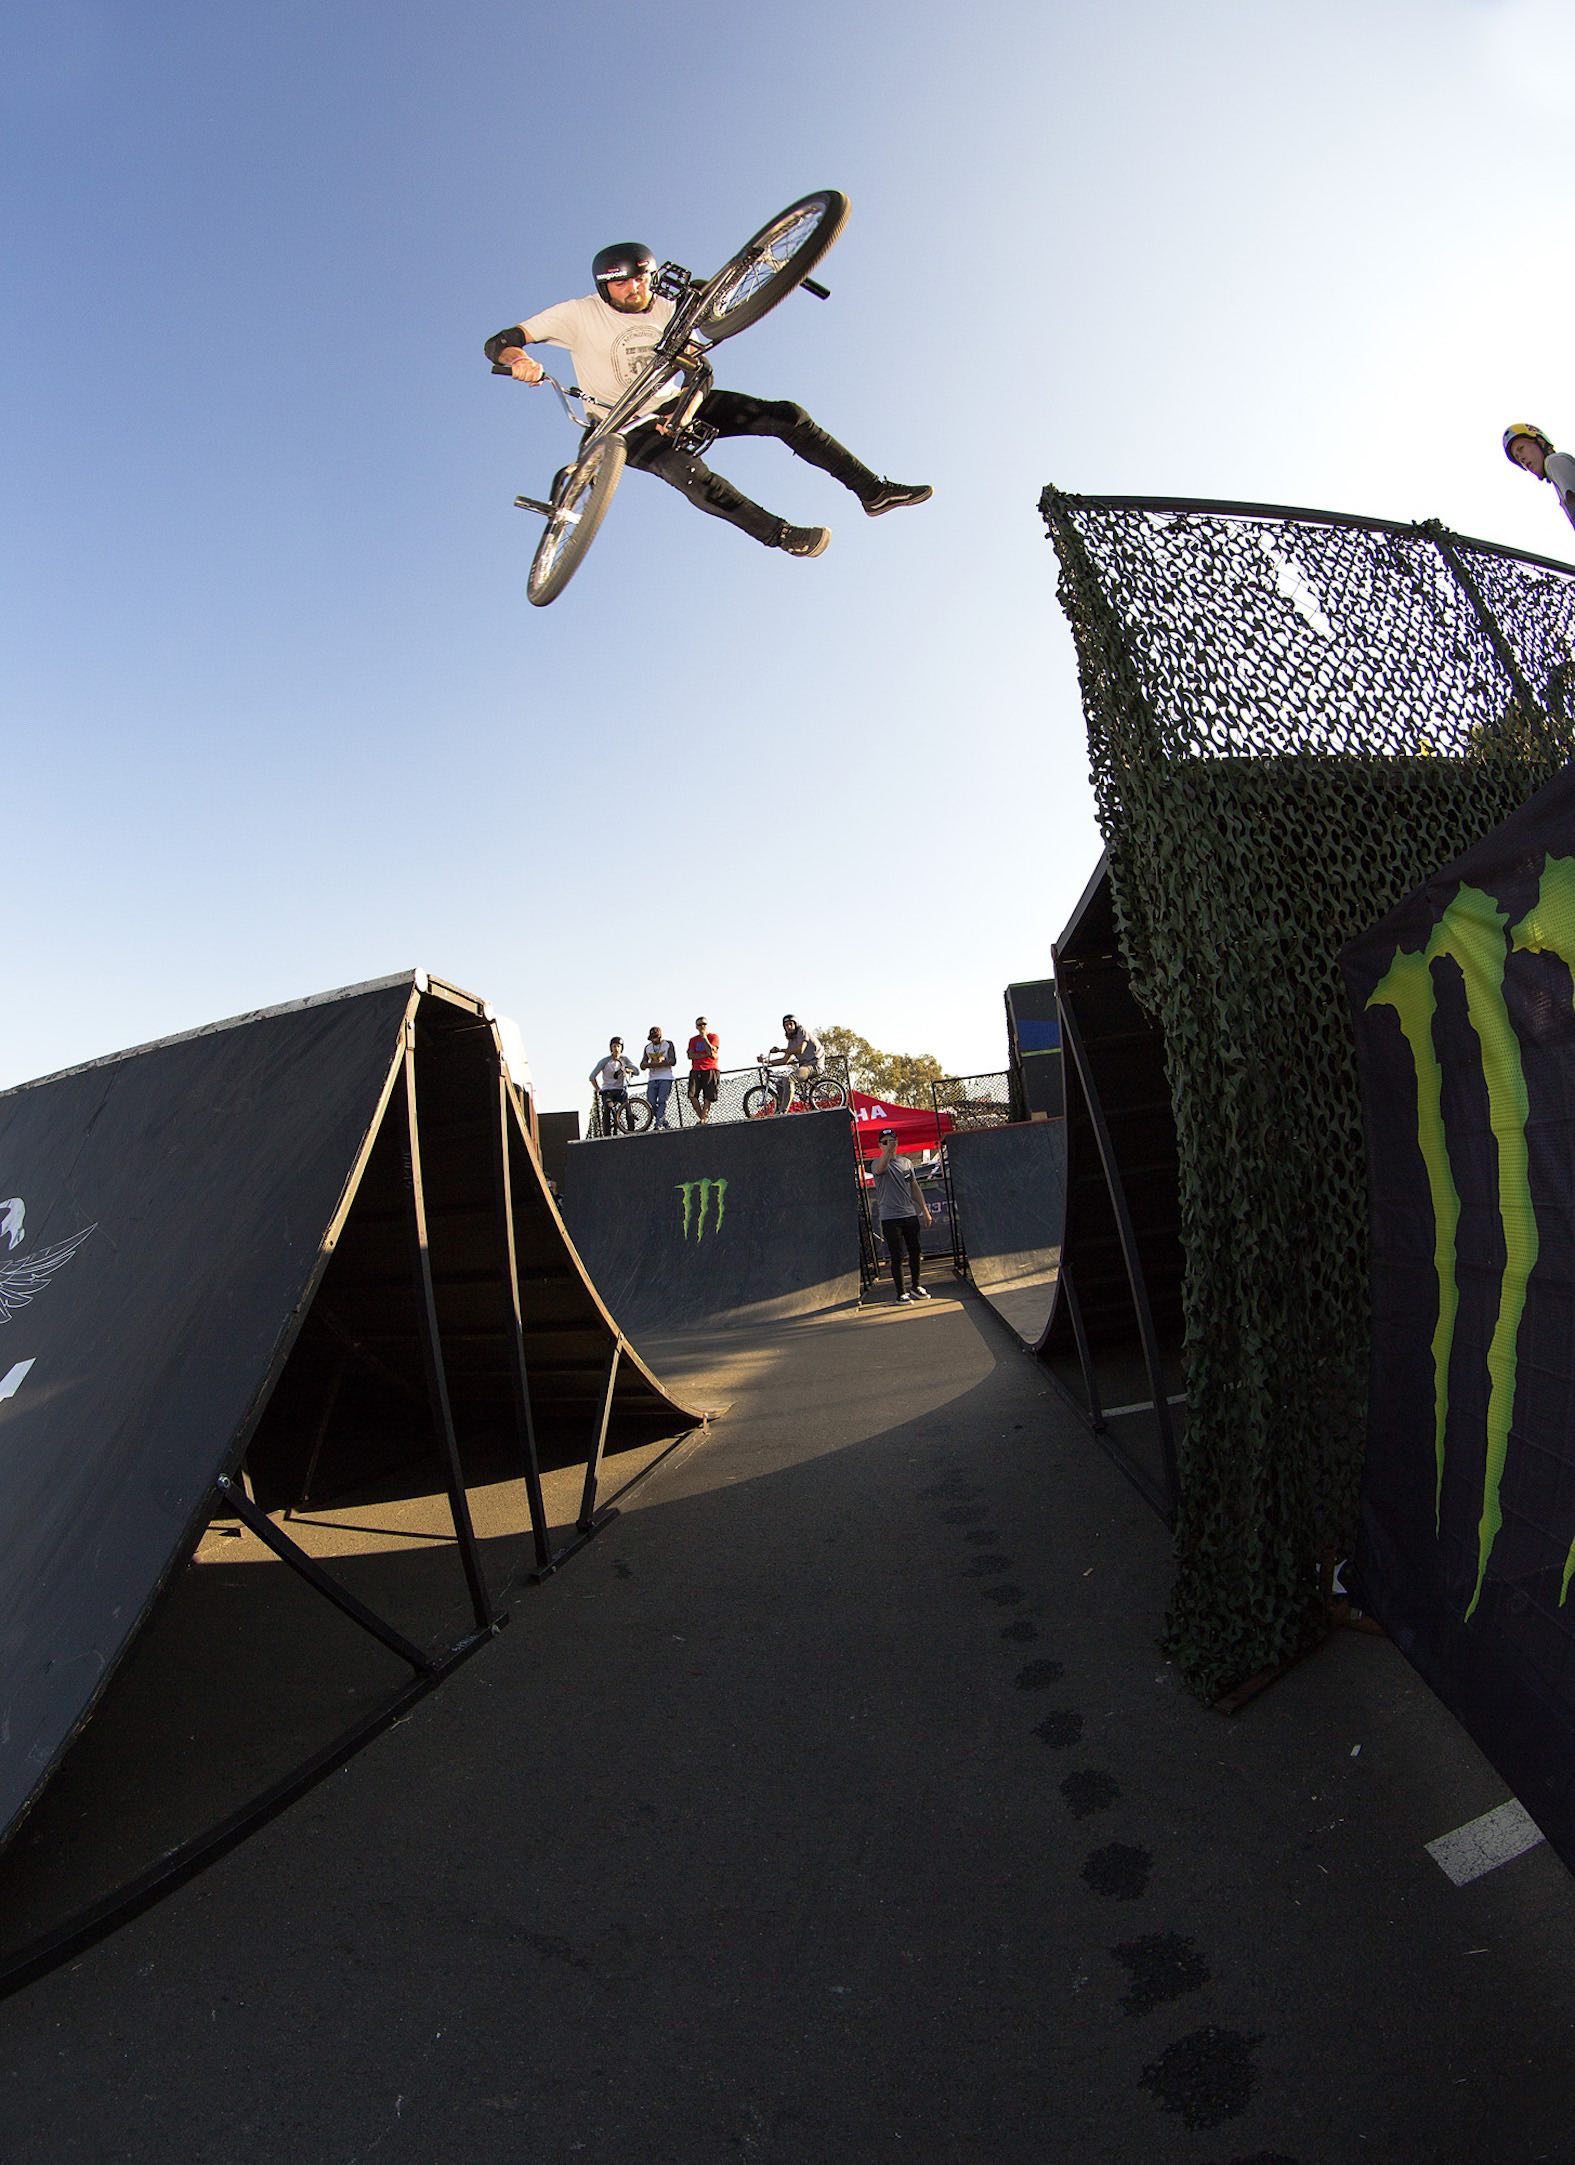 Kyle Kiewiet winning the Ramp Rodeo BMX Best Trick